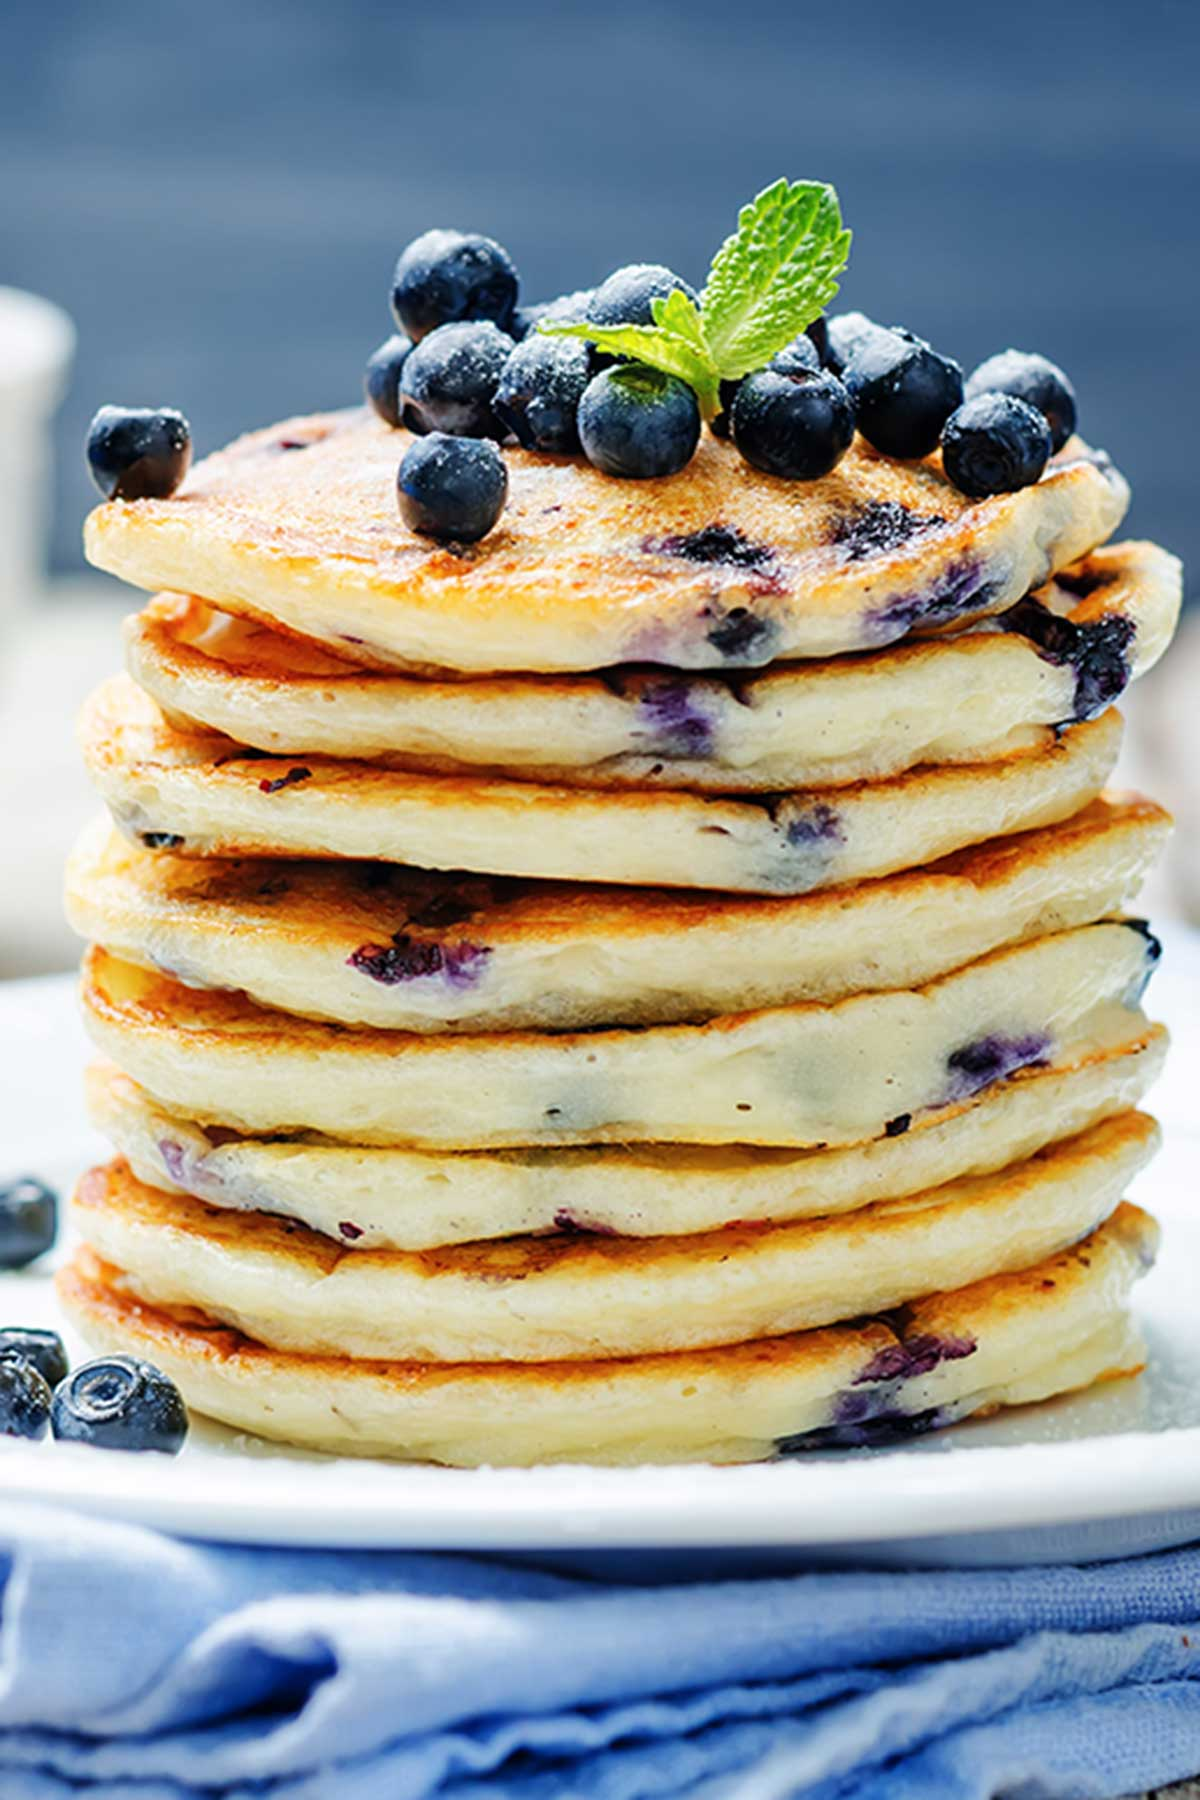 large stack of blueberry pancakes viewed from the side